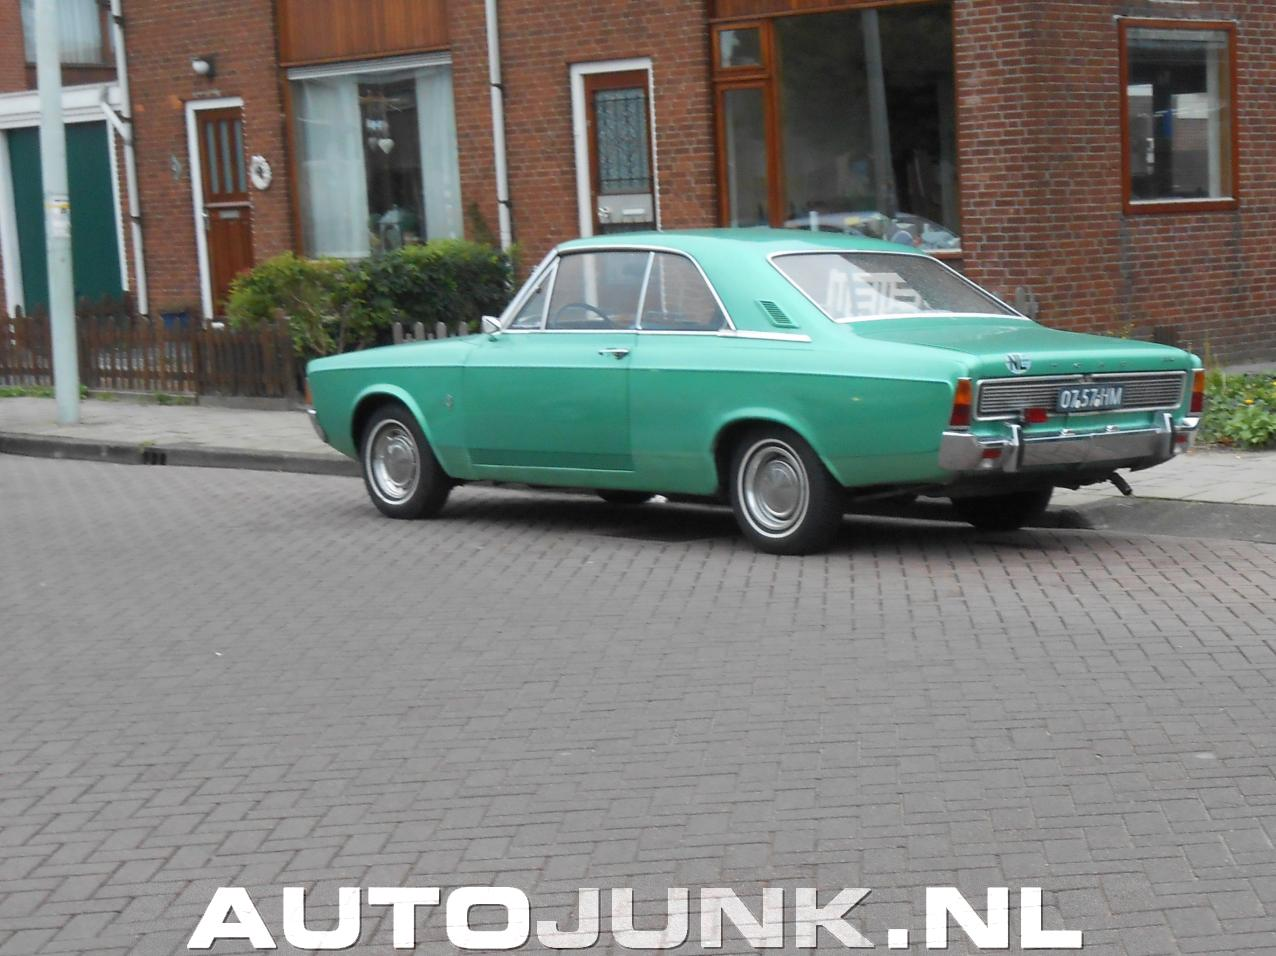 https://static.autojunk.nl/pictures/2014/1013/070439/ford-taunus-20m-v6-hardtop_08.jpg